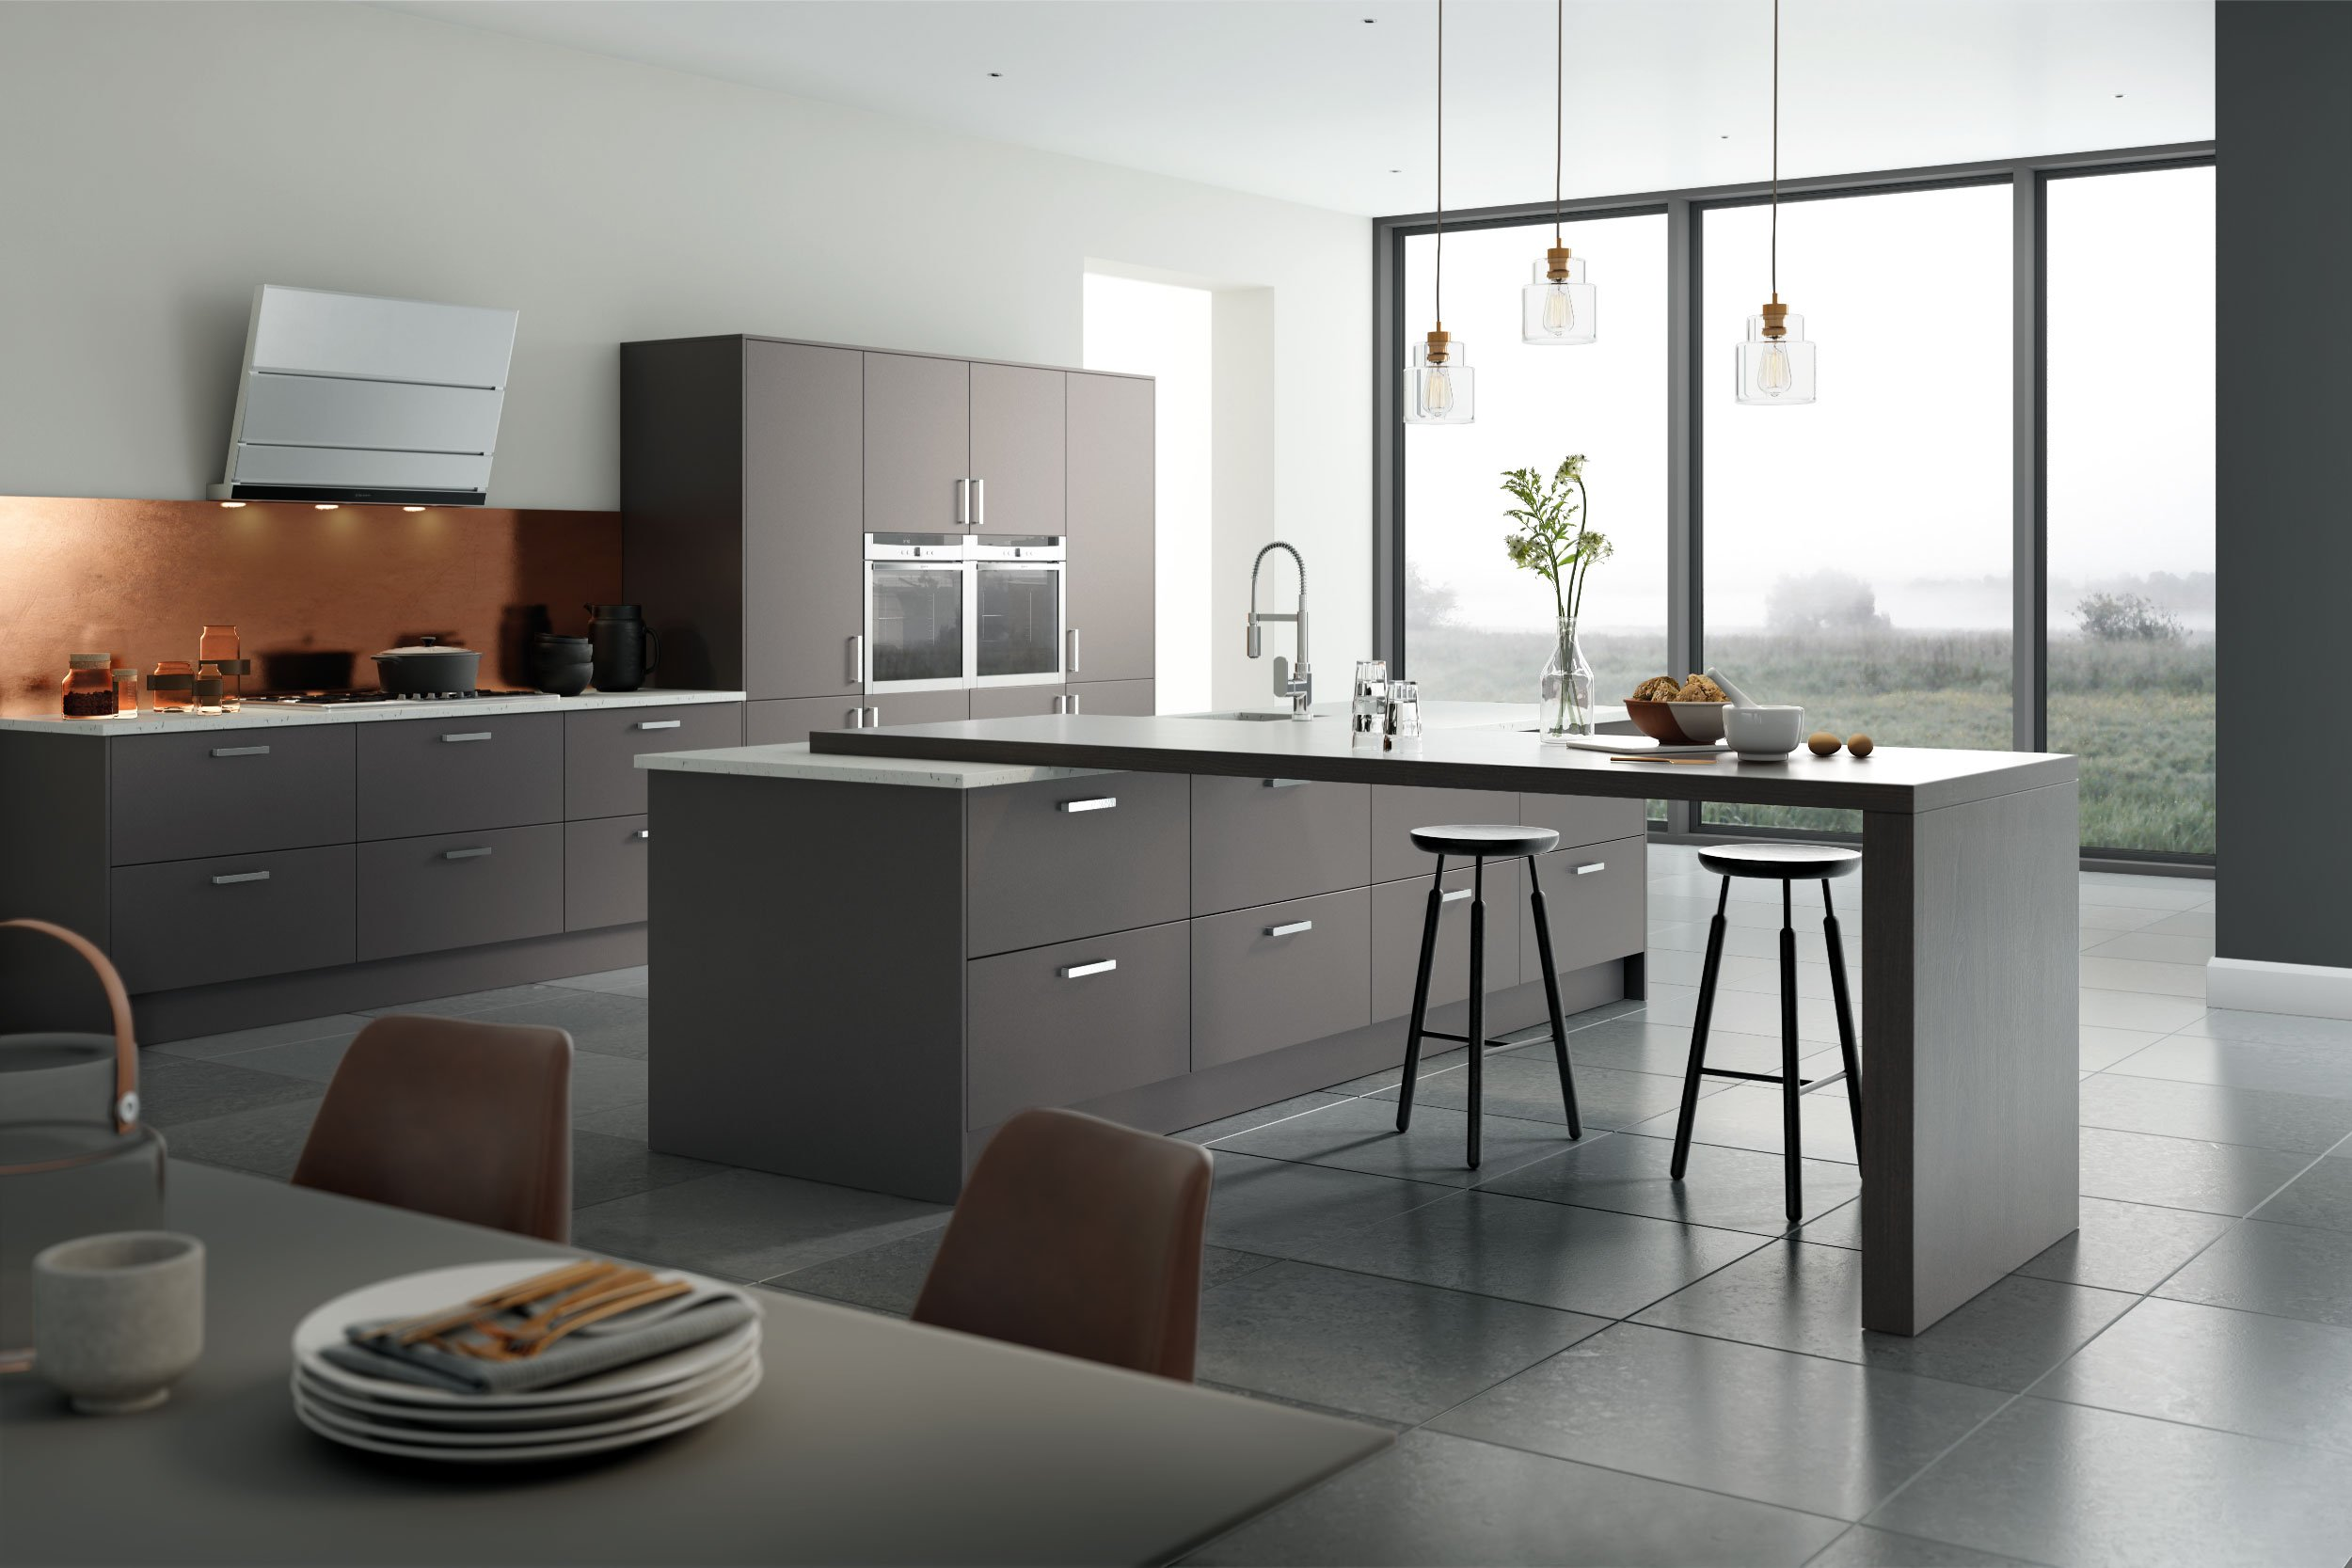 Kitchen companies sussex surrey south london quince kitchens Kitchen design companies in surrey